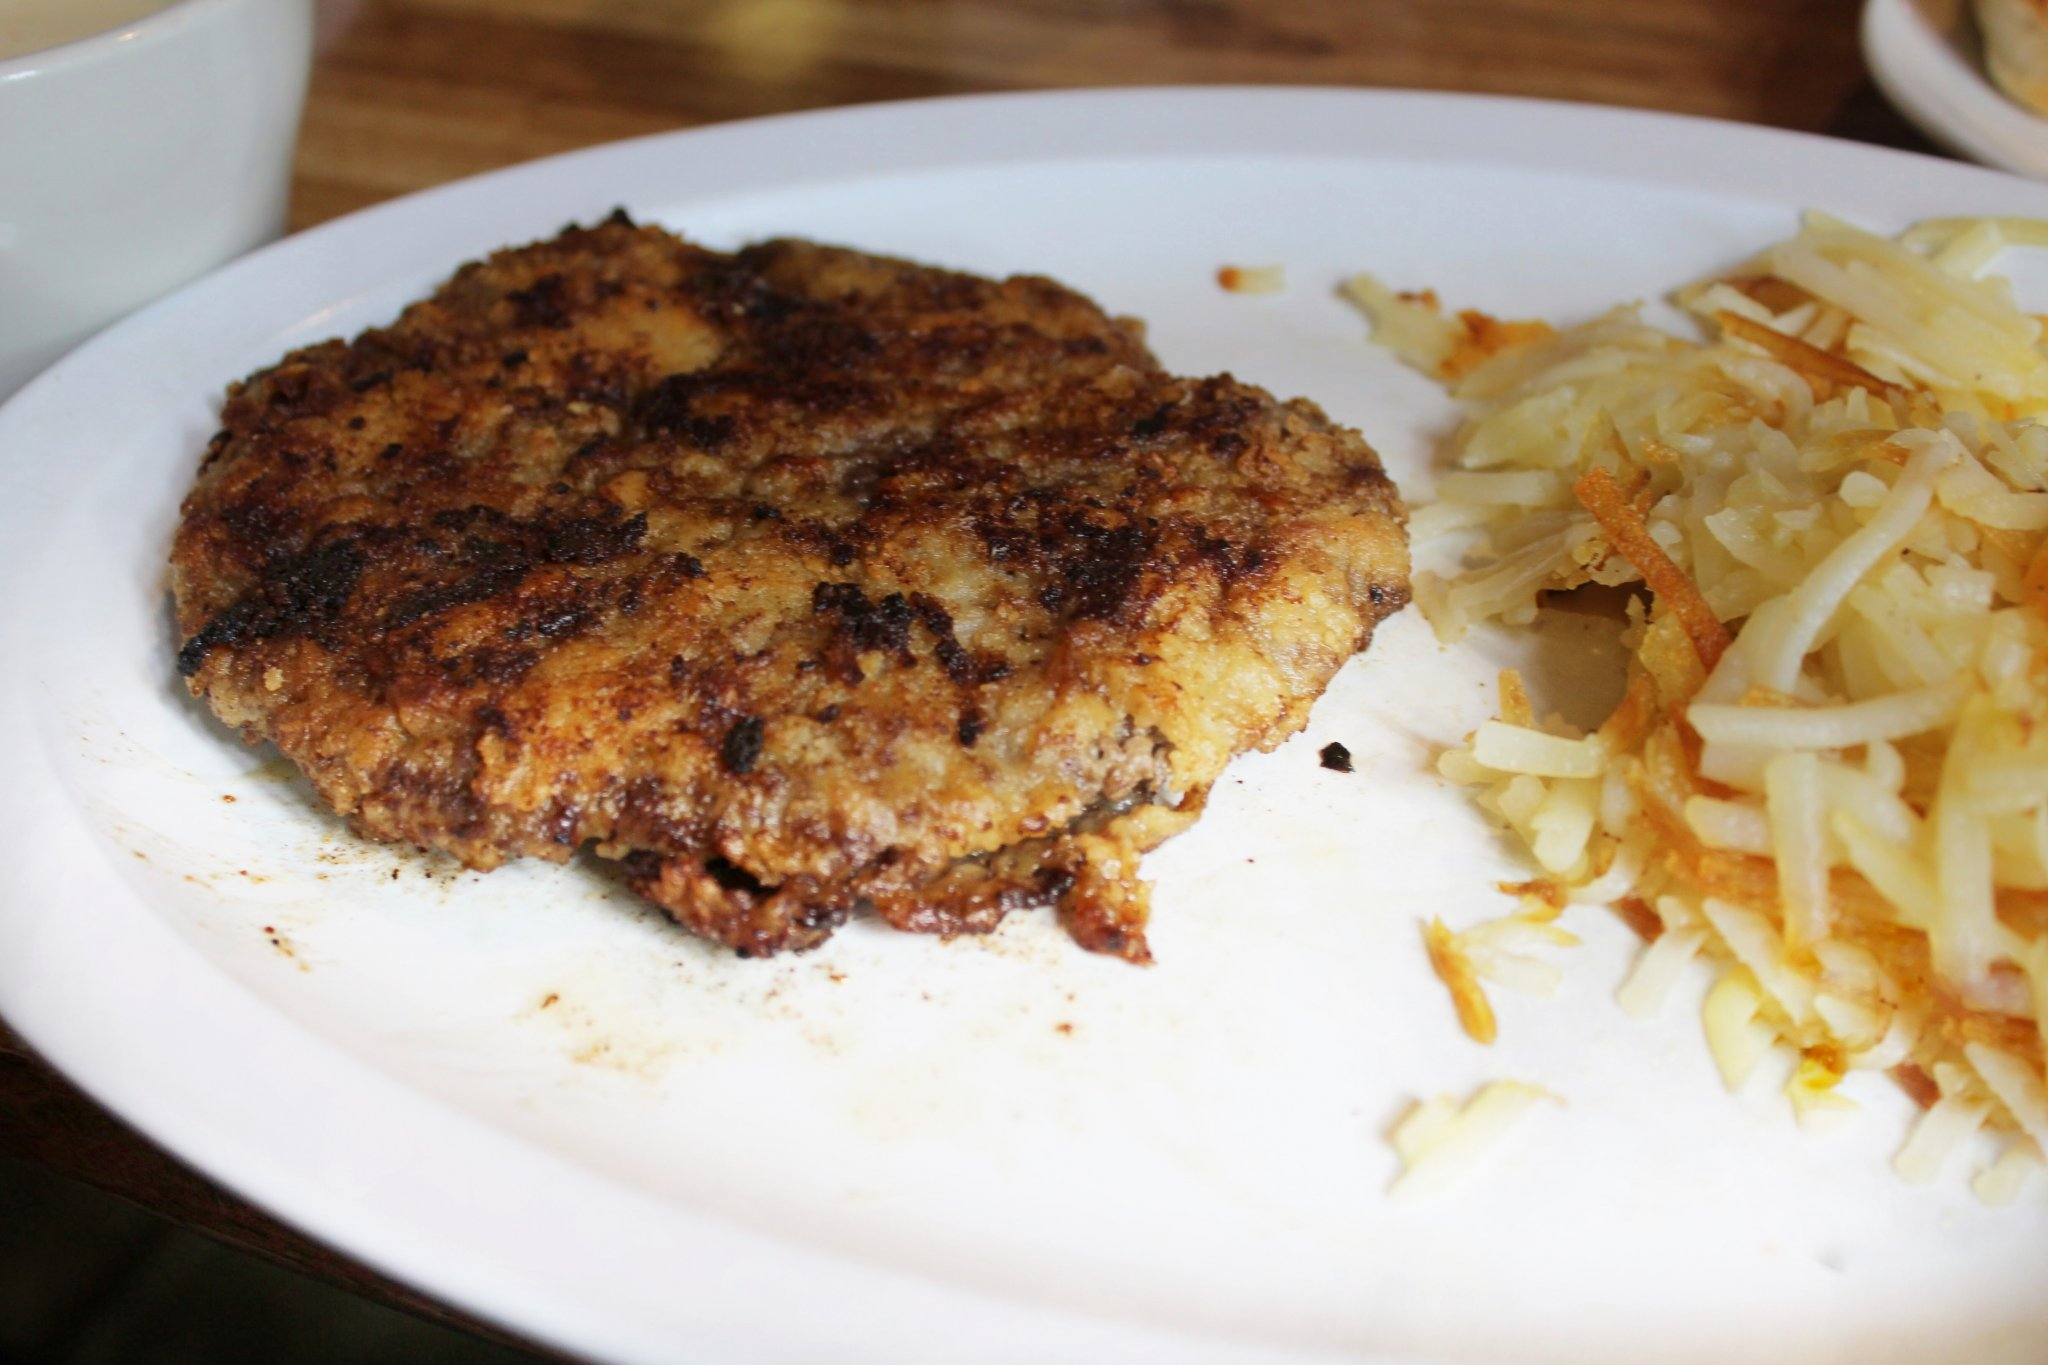 Where to Eat in Amarillo? Chicken Fried Steak at Youngblood's Cafe.